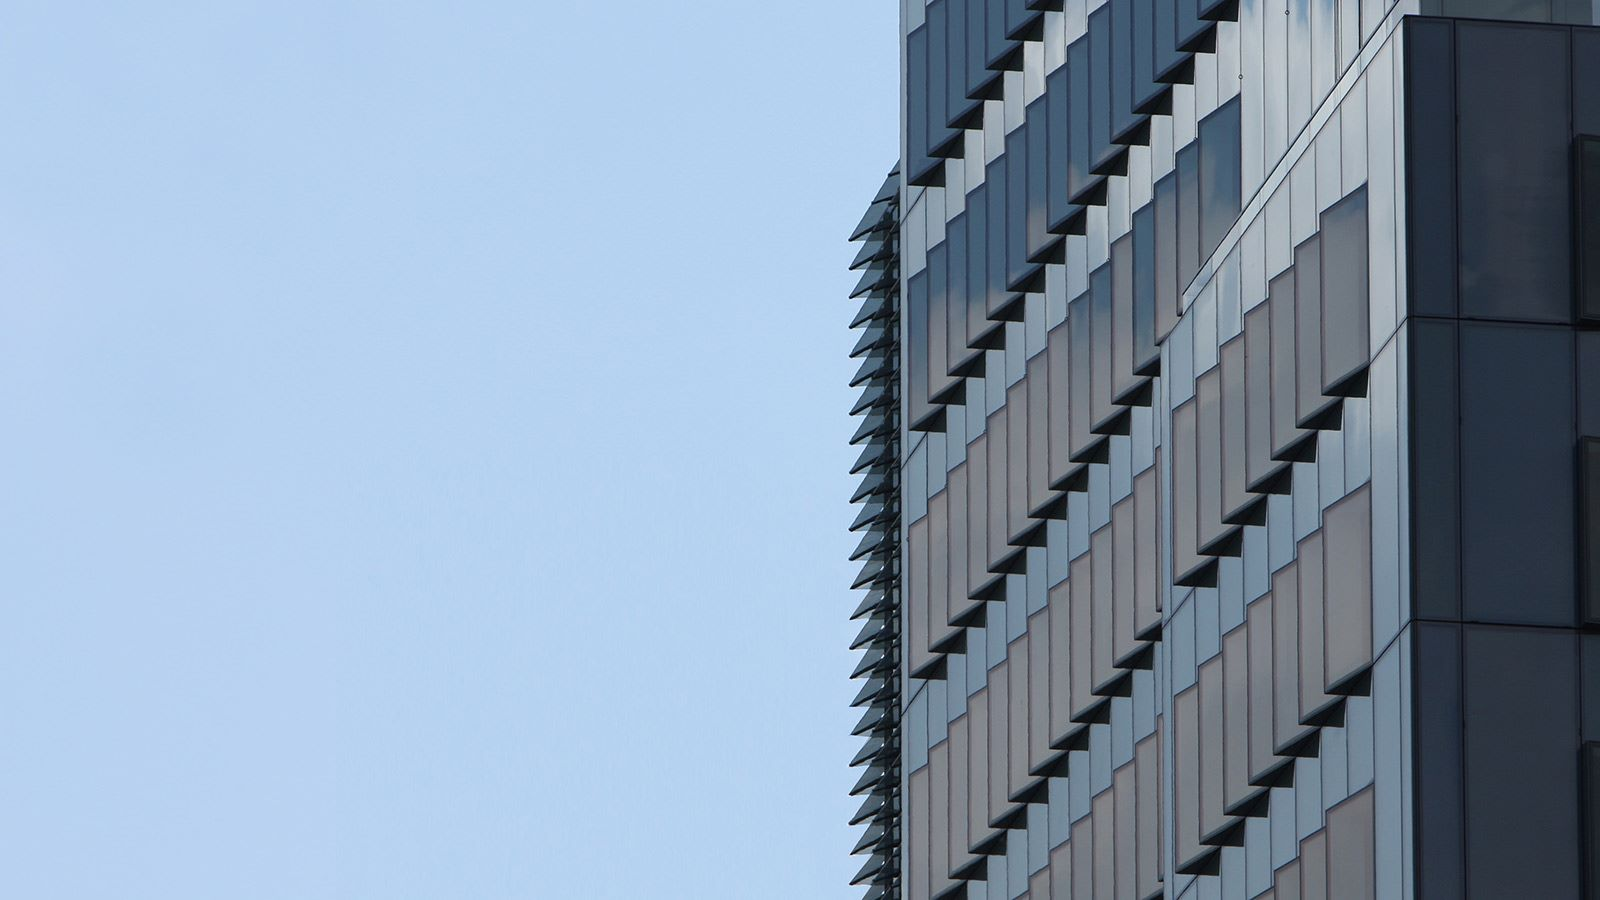 Ropermaker Place Skyscraper - Mace Group